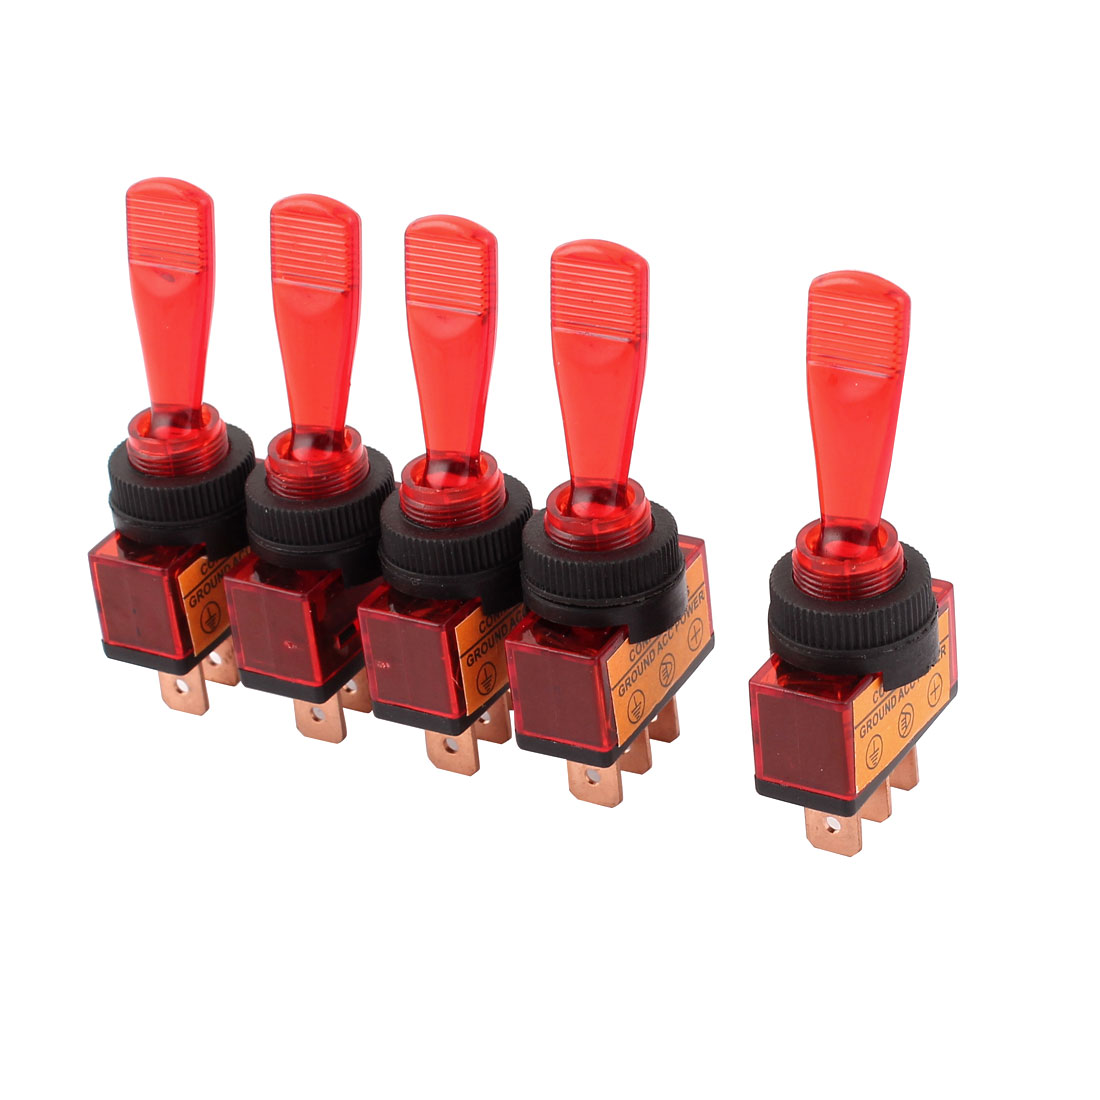 5 Pcs DC 12V 20A 12mm Thread Panel Mount SPDT 2-Position Toggle Switch Red